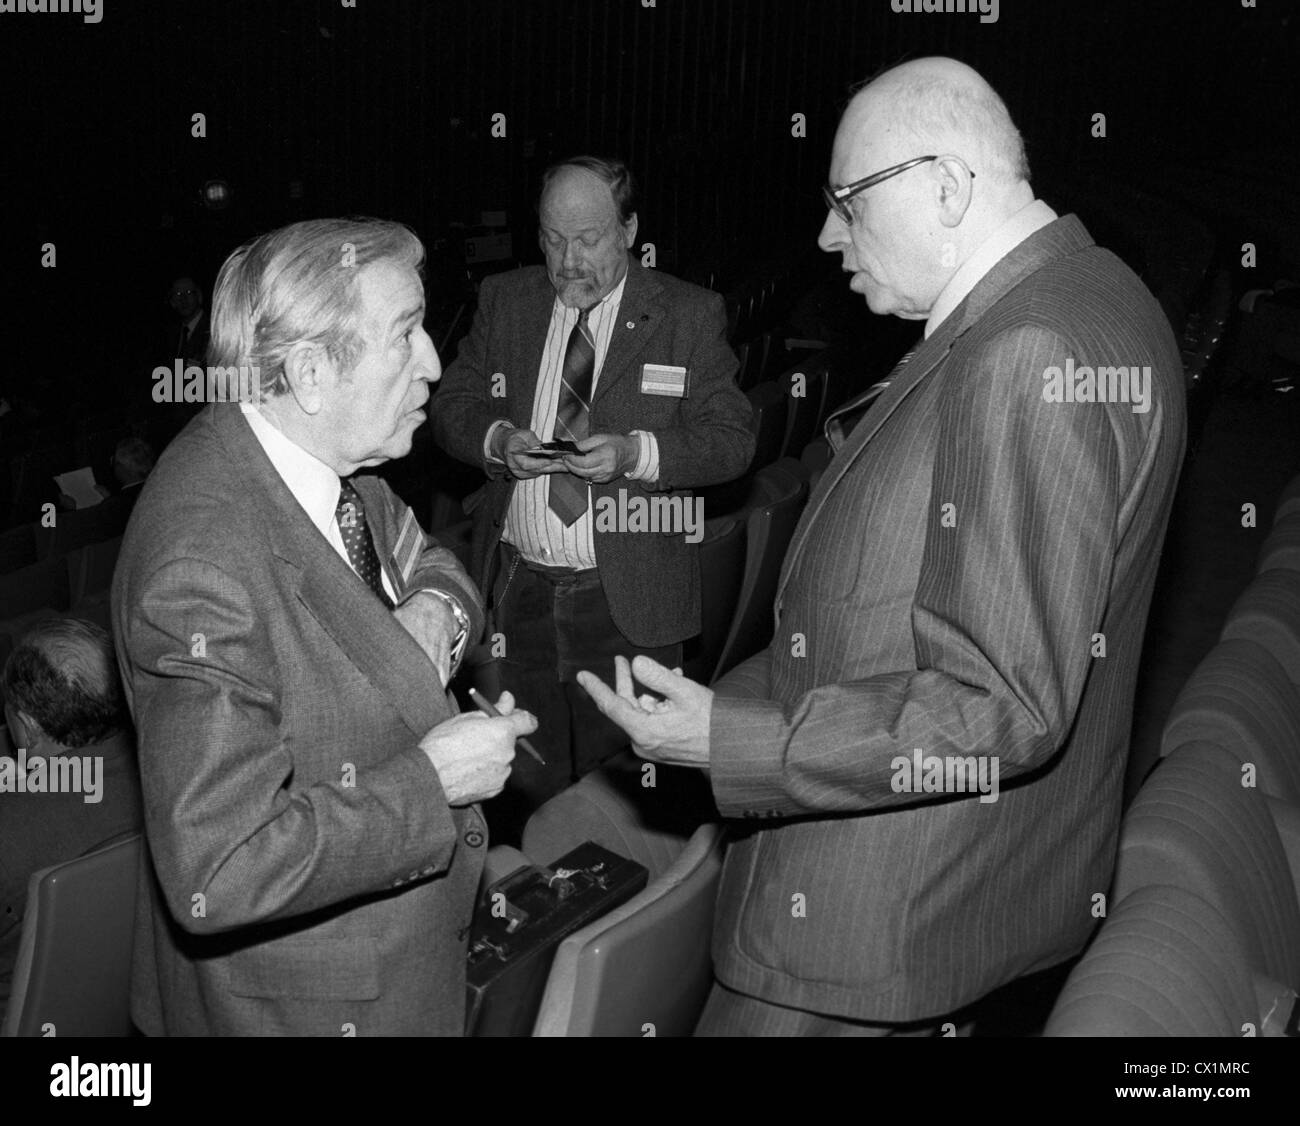 Moscow. USSR. Academician Andrei Sakharov (R) and Jerome Wiesner, educator and Science Advisor to U.S. Presidents, - Stock Image